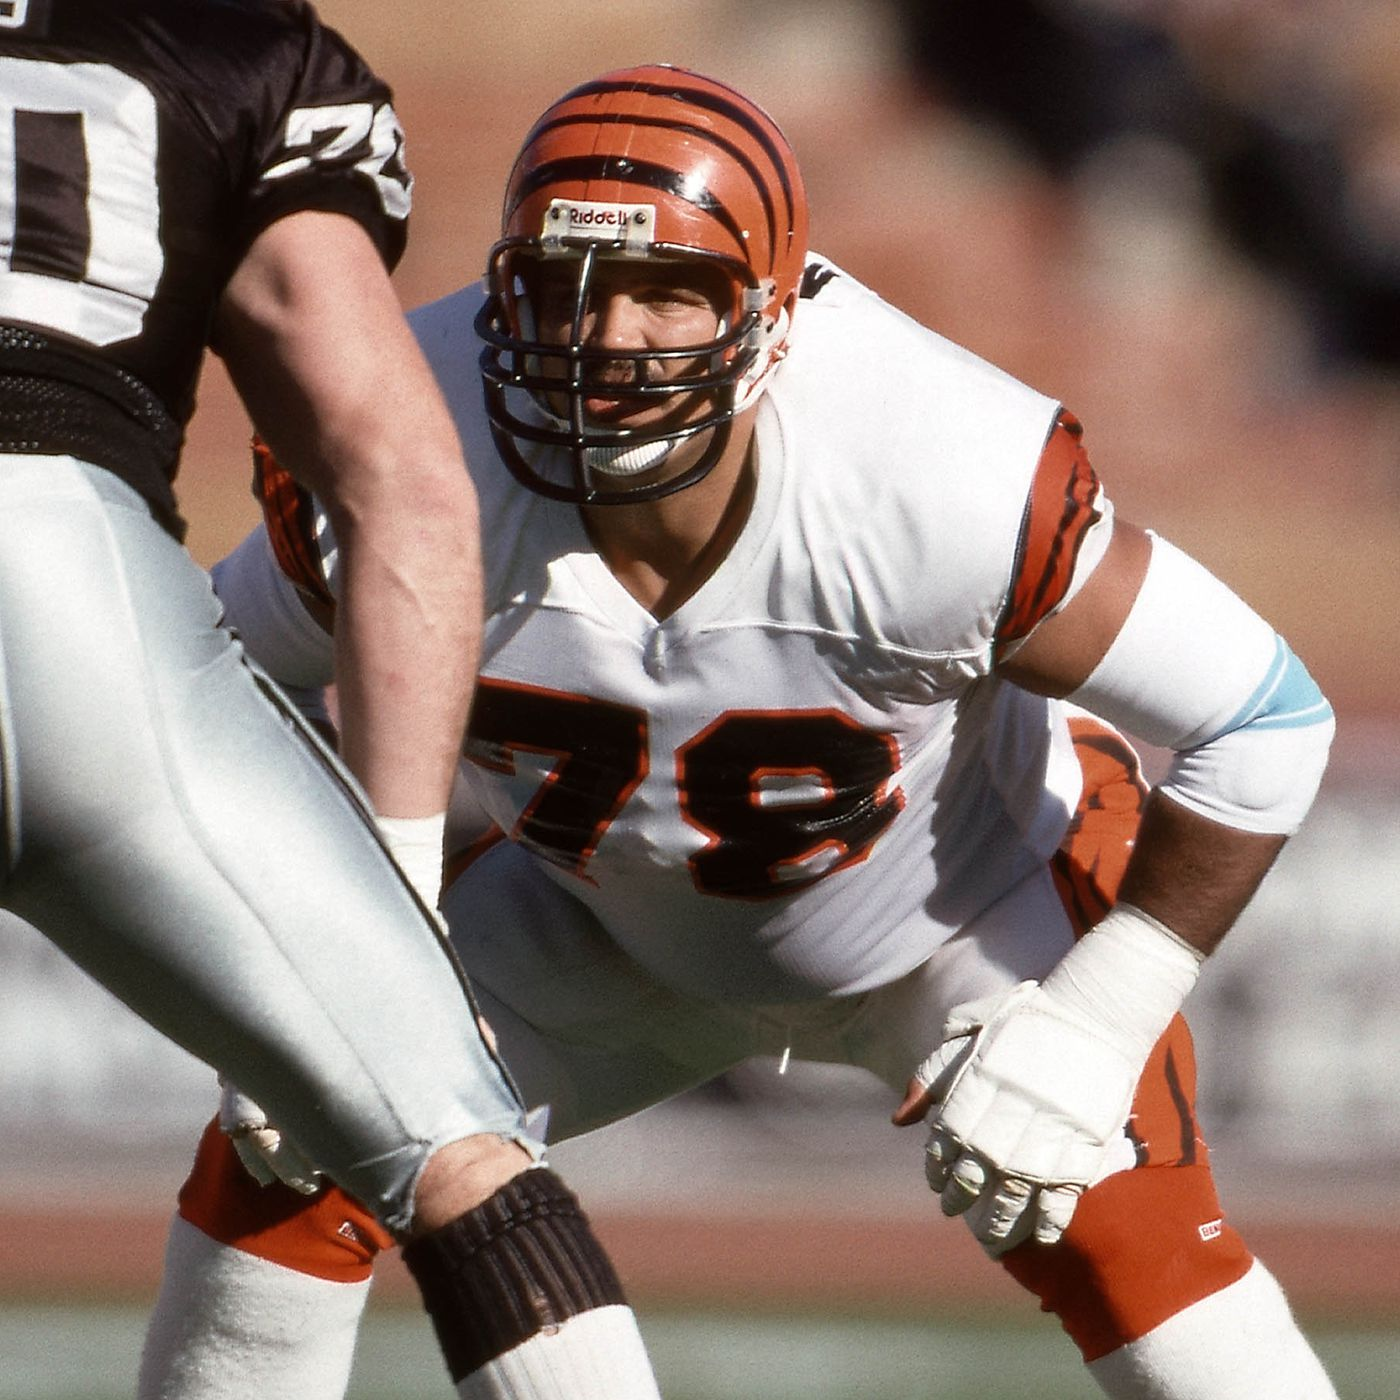 Bengals Moments - Anthony Munoz To The Hall Of Fame - Cincy Jungle